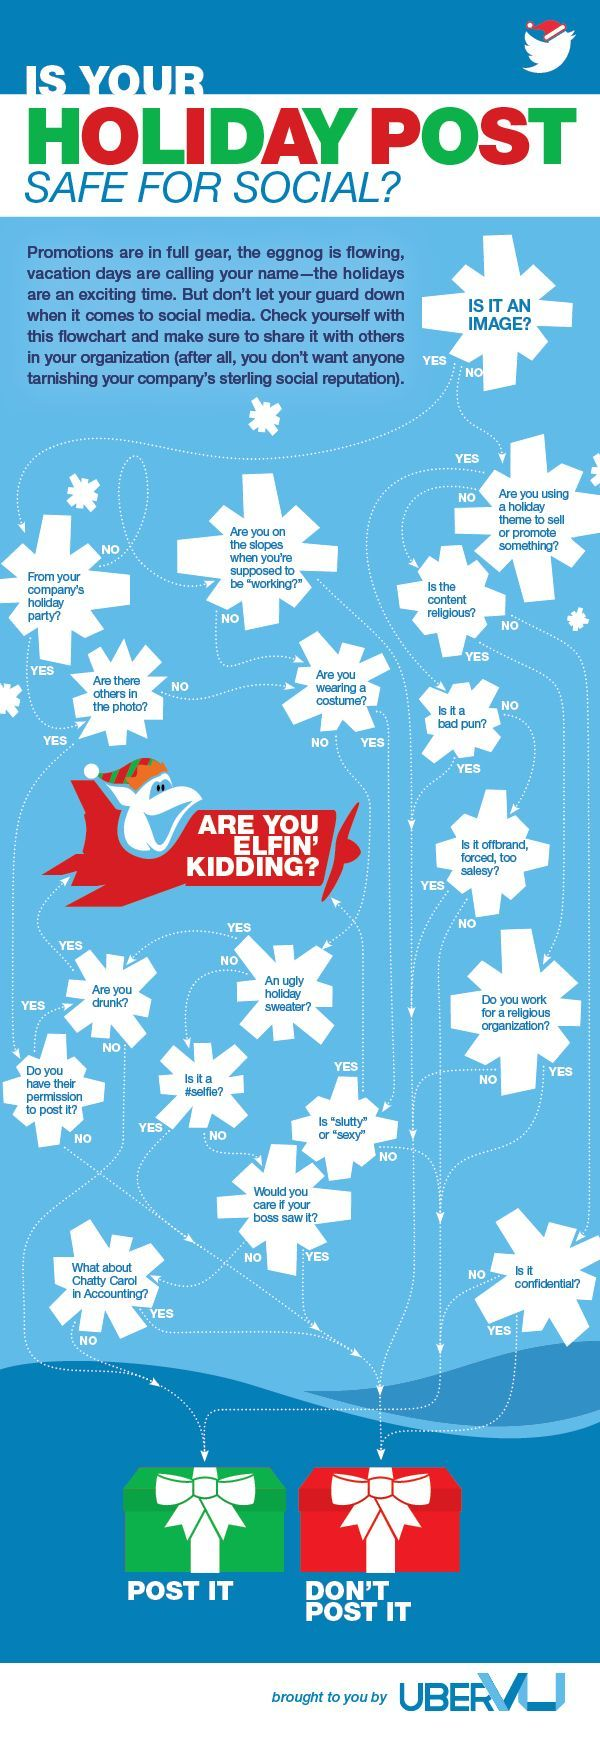 Are Your Holiday #SocialMedia Posts Naughty or Nice? [INFOGRAPHIC]